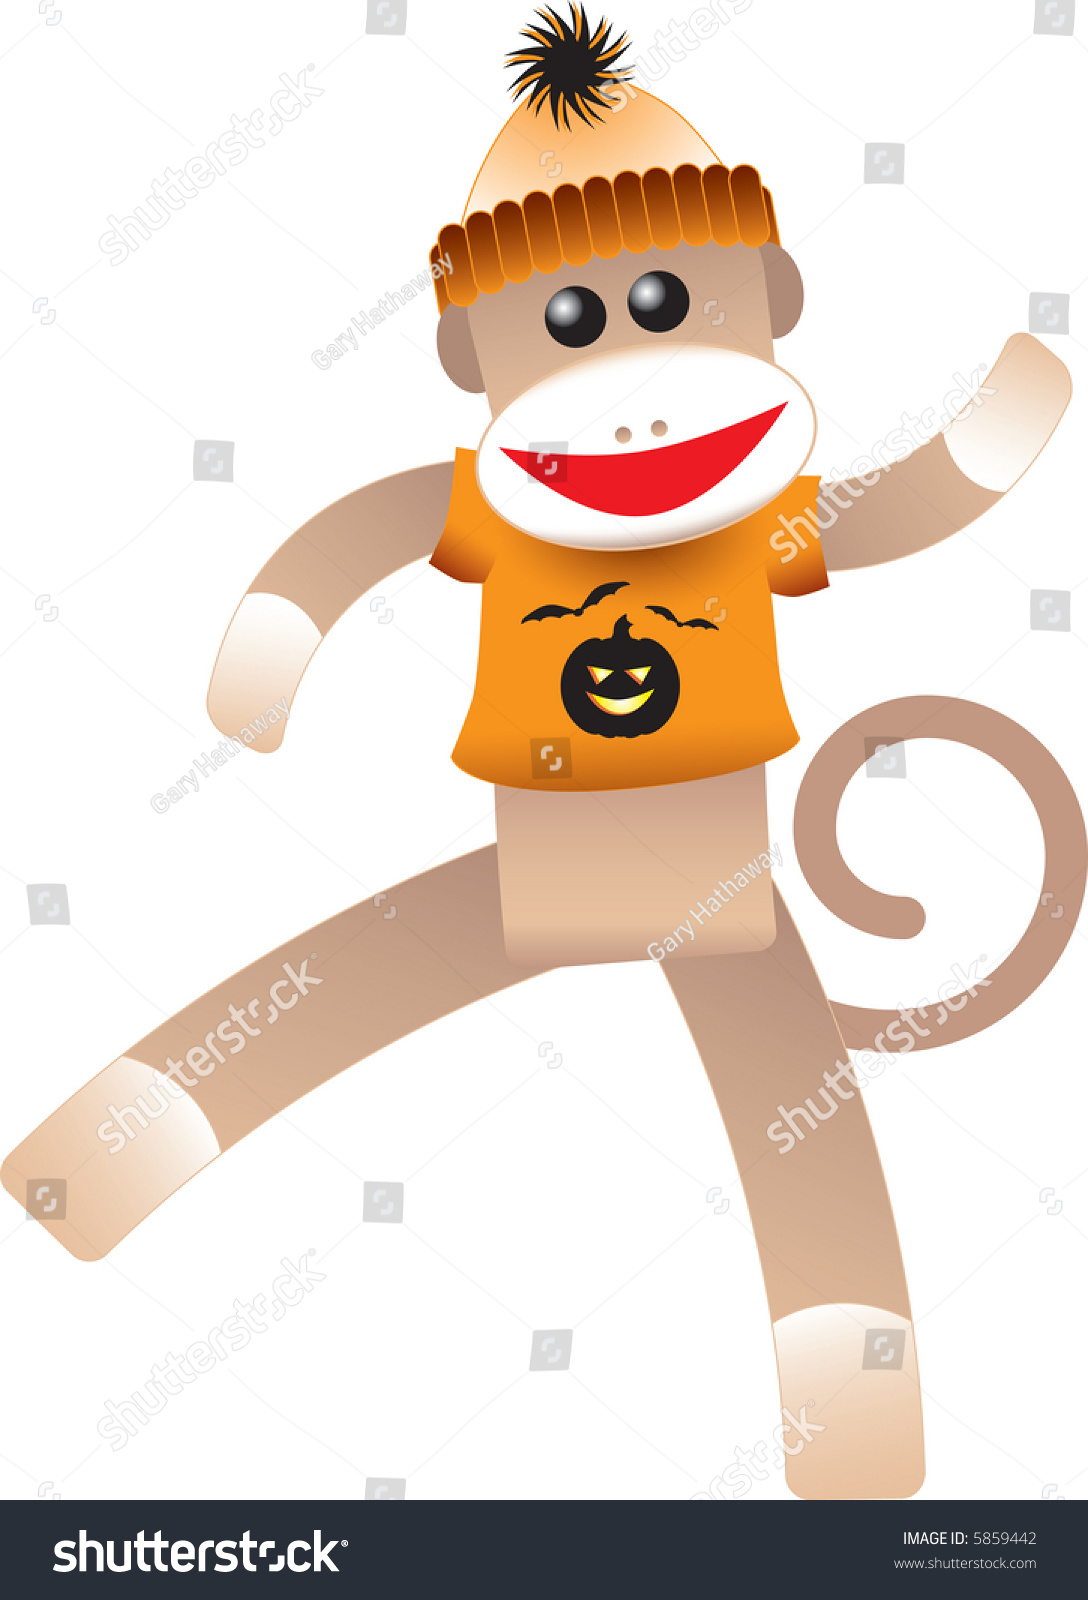 halloween sock monkey stock vector (royalty free) 5859442 - shutterstock